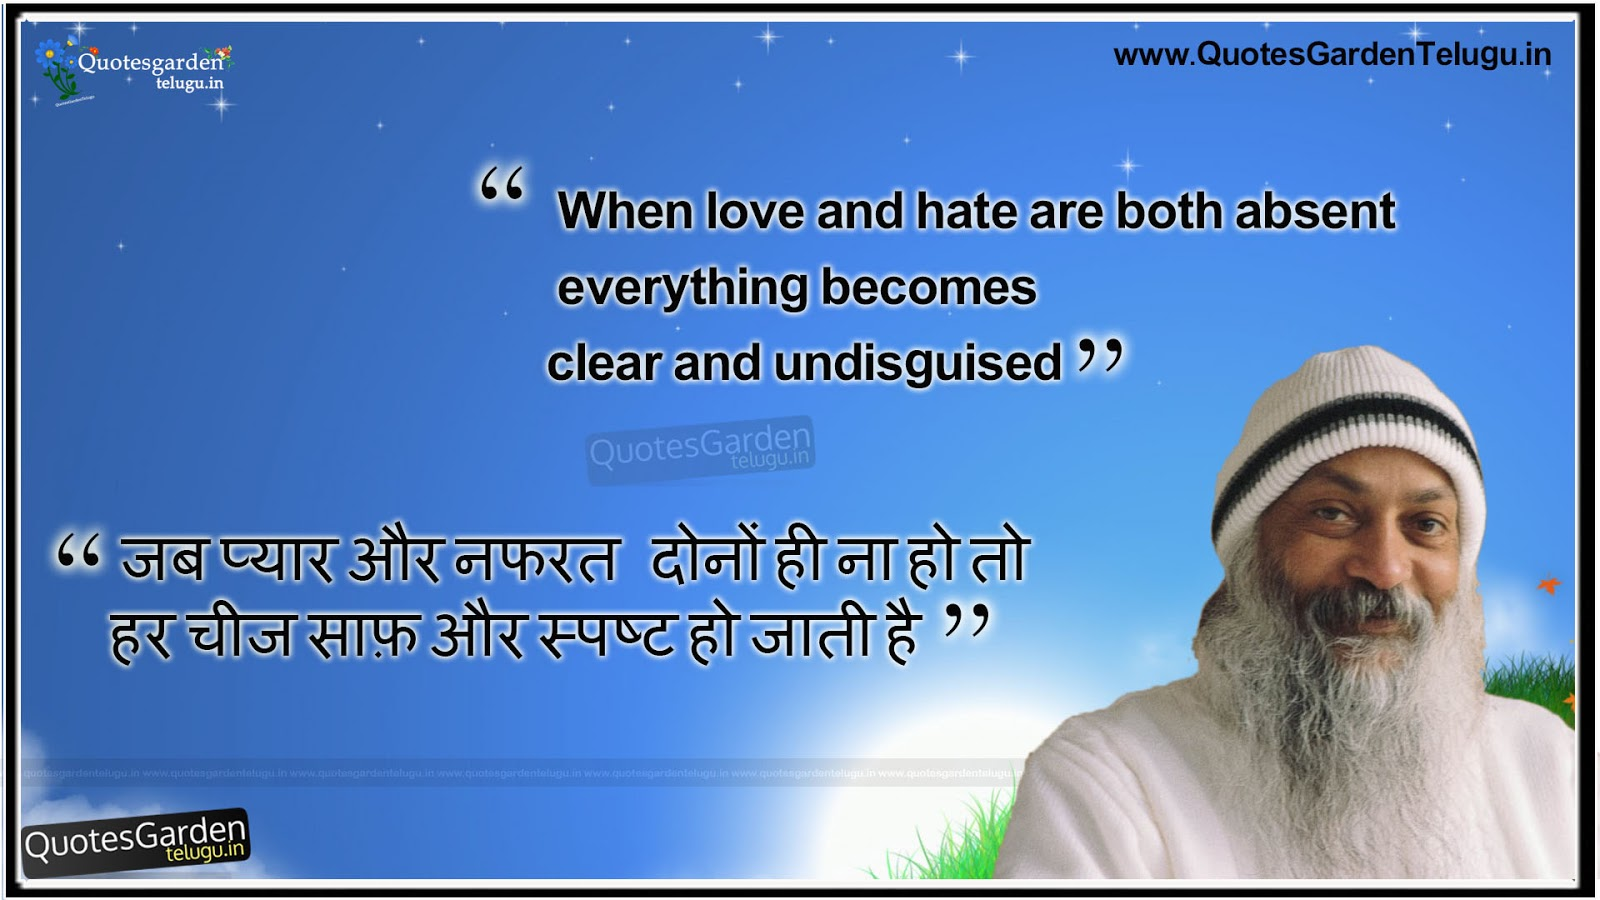 best of osho quotes in hindi and english quotes garden